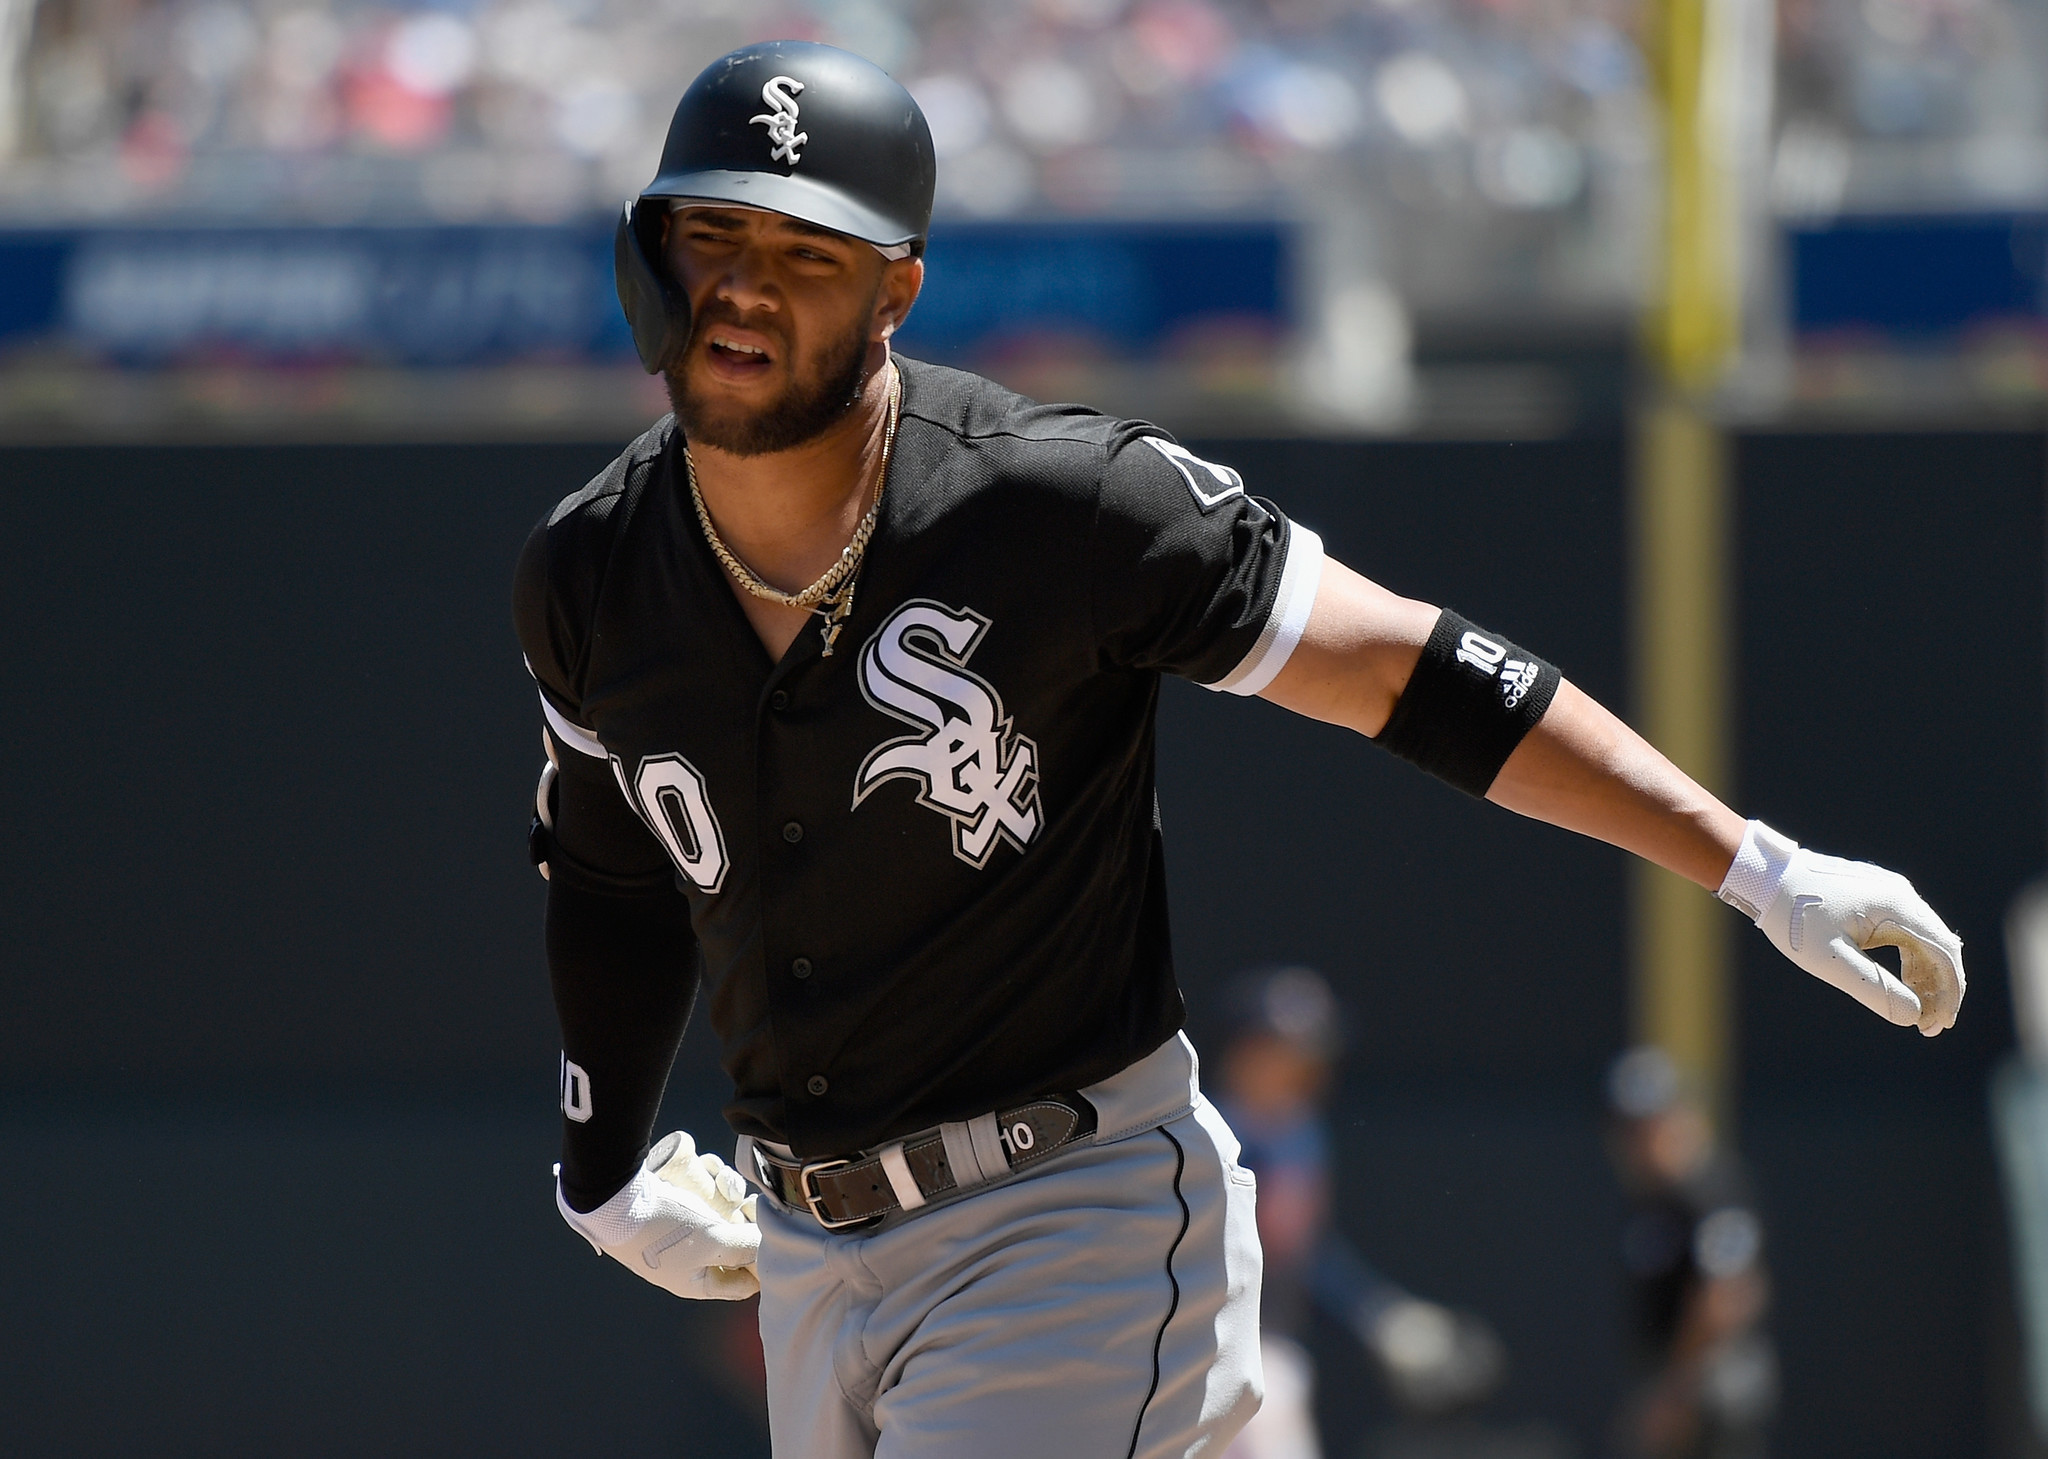 White Sox strike out 16 times in 7-0 loss to Twins